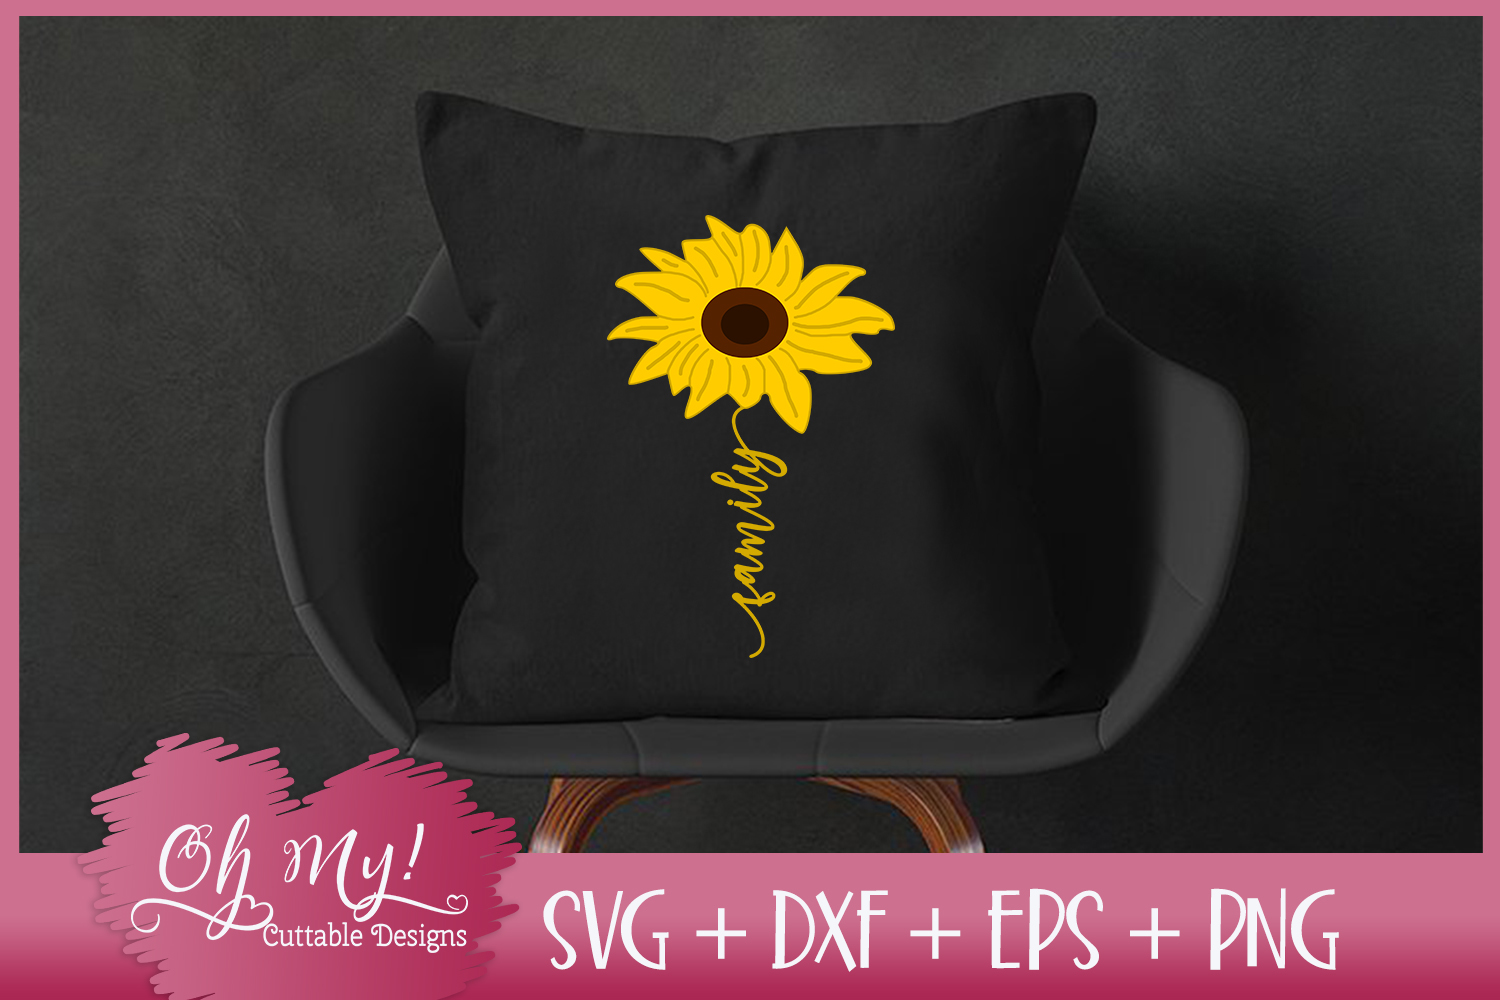 Family Sunflower - SVG EPS DXF PNG Cutting File example image 1